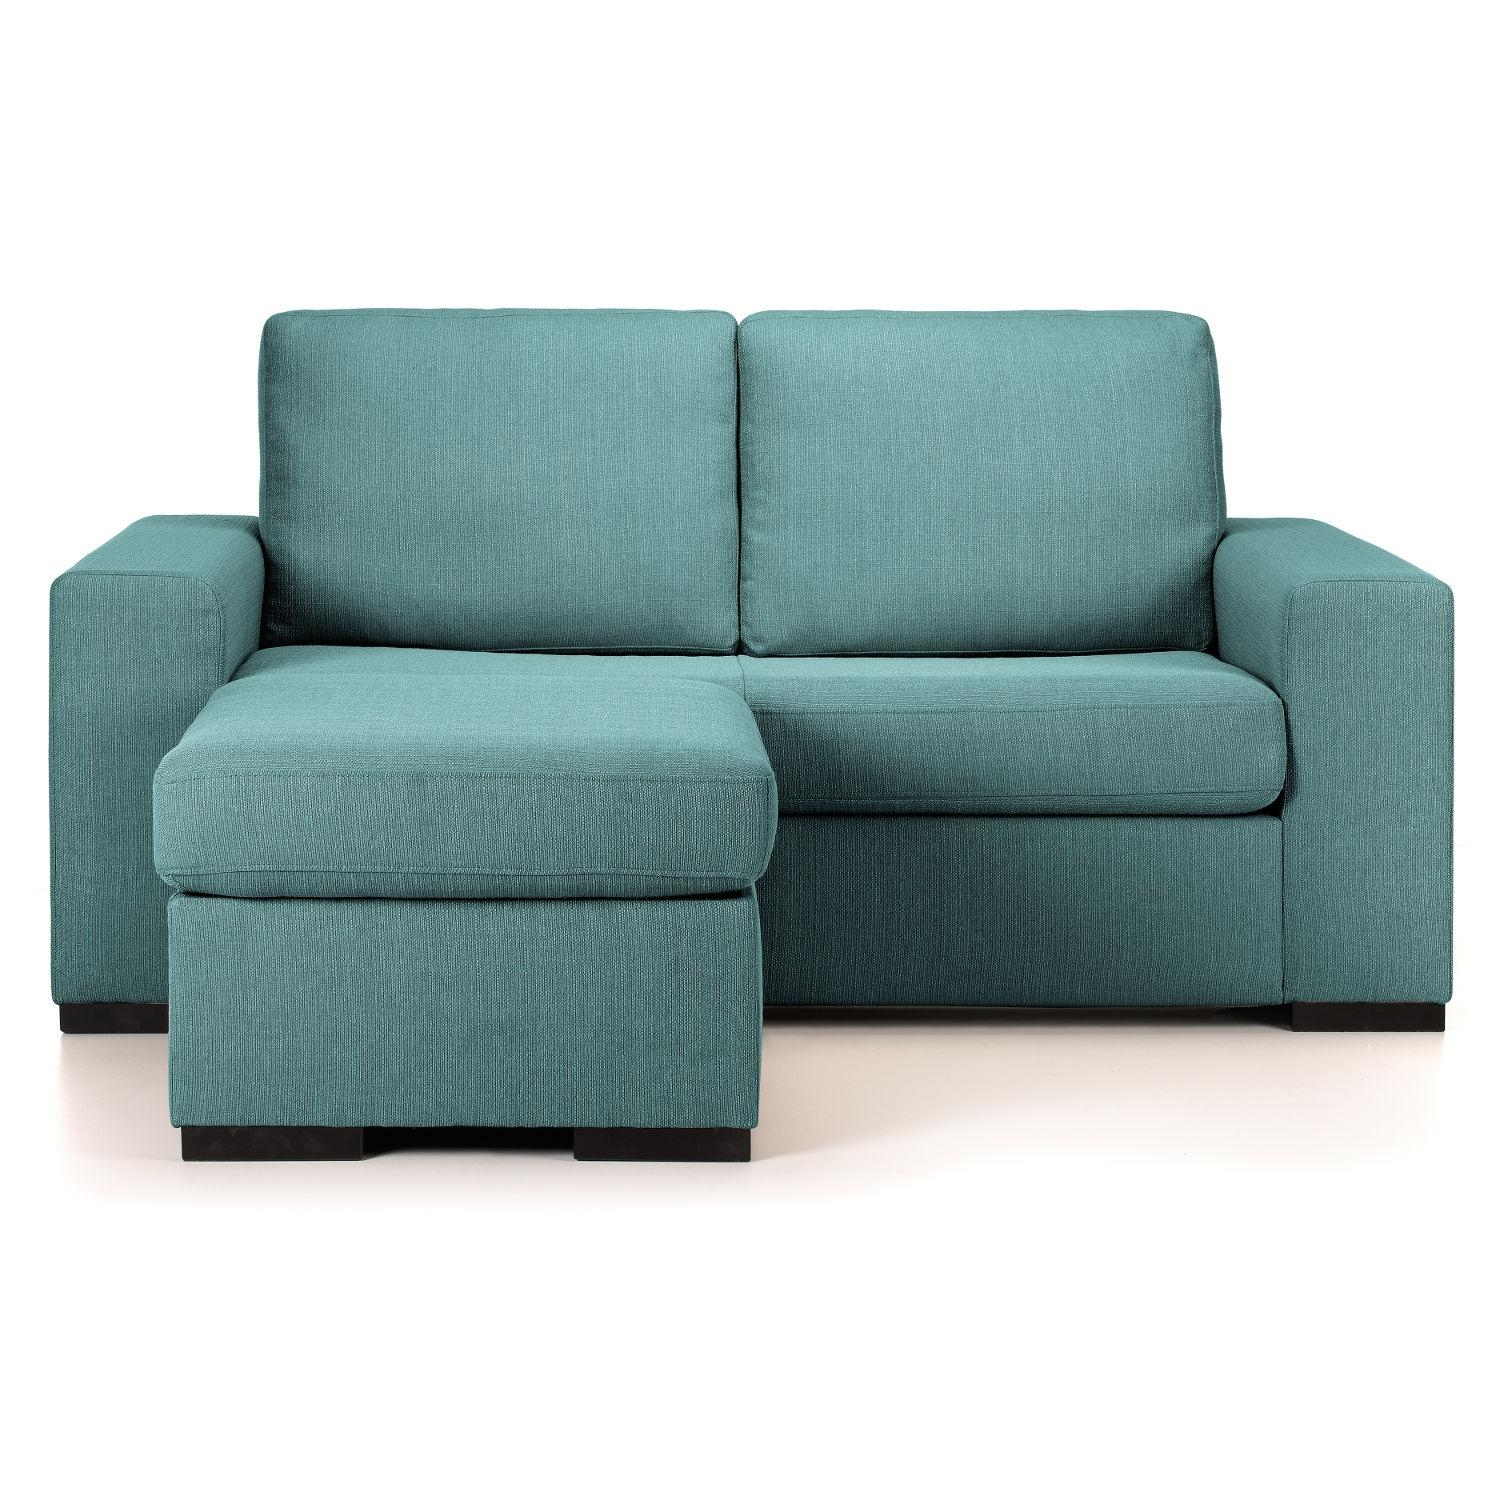 Chaise Sofa With Storage With Inspiration Hd Photos 13375 Inside Chaise Sofa Beds With Storage (View 9 of 20)